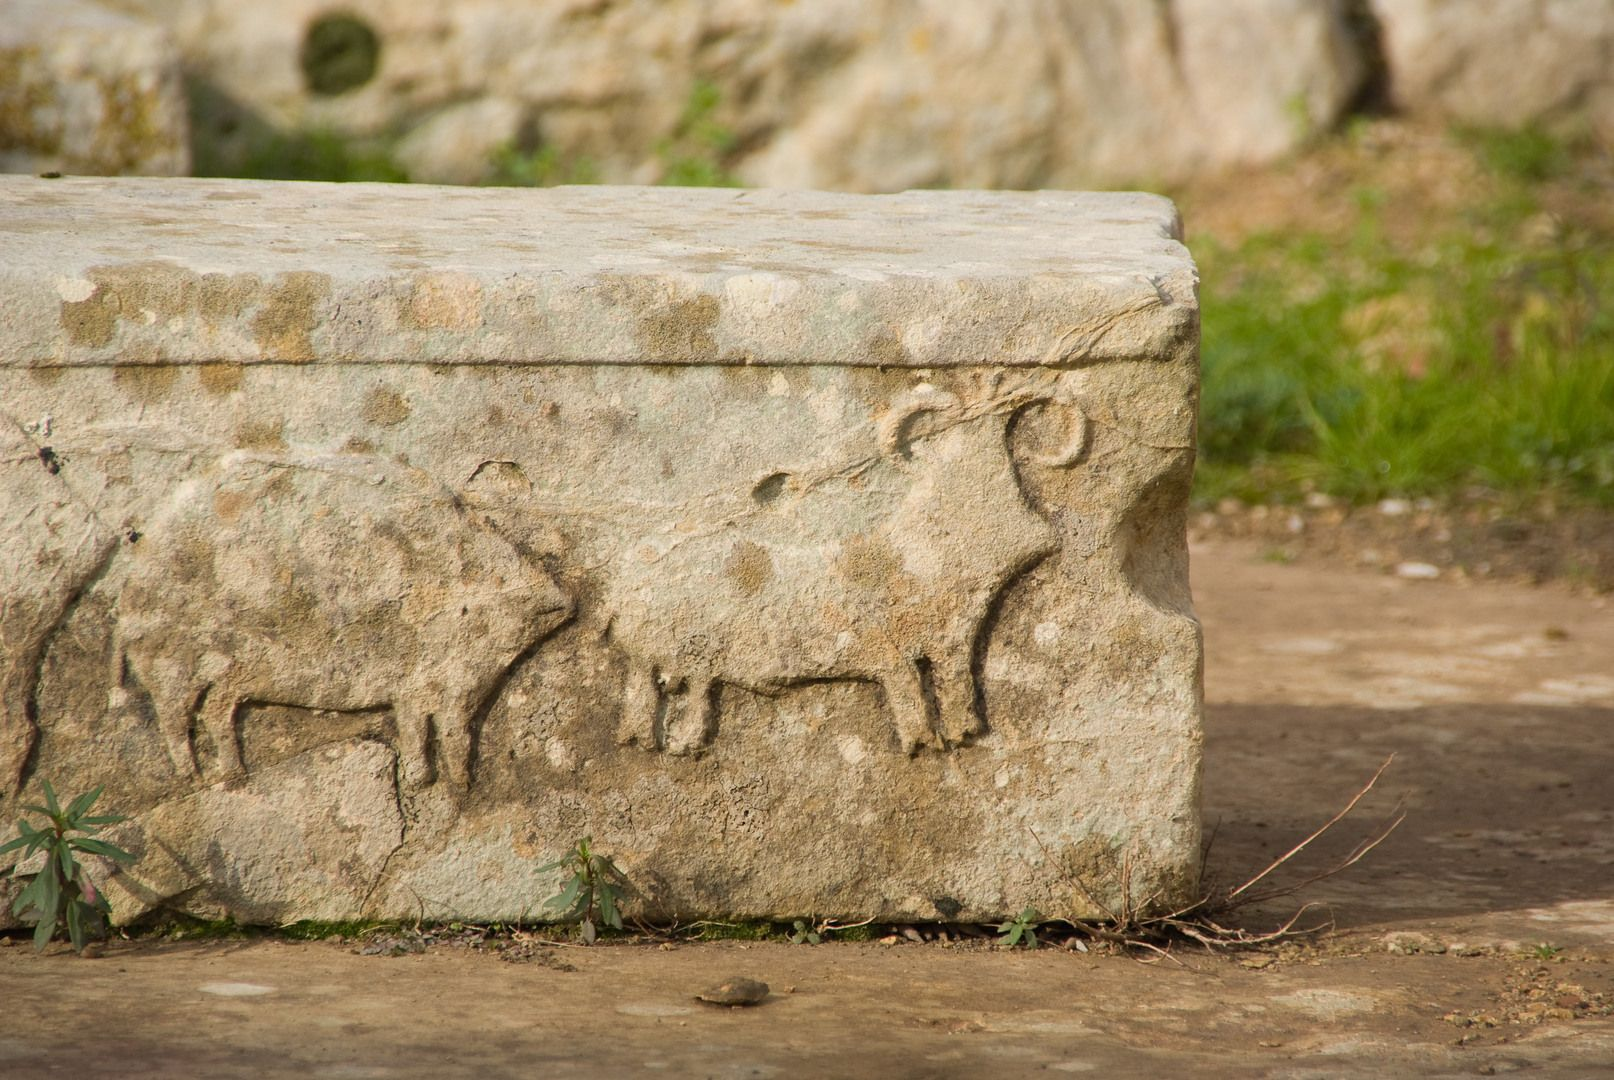 3600-2500 Malta Animal Relief of a bull and sow part of monumental structures from Tarxien, Malta. Maltese prehistory has been recalibrated to 3rd millennia BCE. The prehistoric Maltese cultures developed earlier and independently of the Egyptian pyramids or Stonehenge.